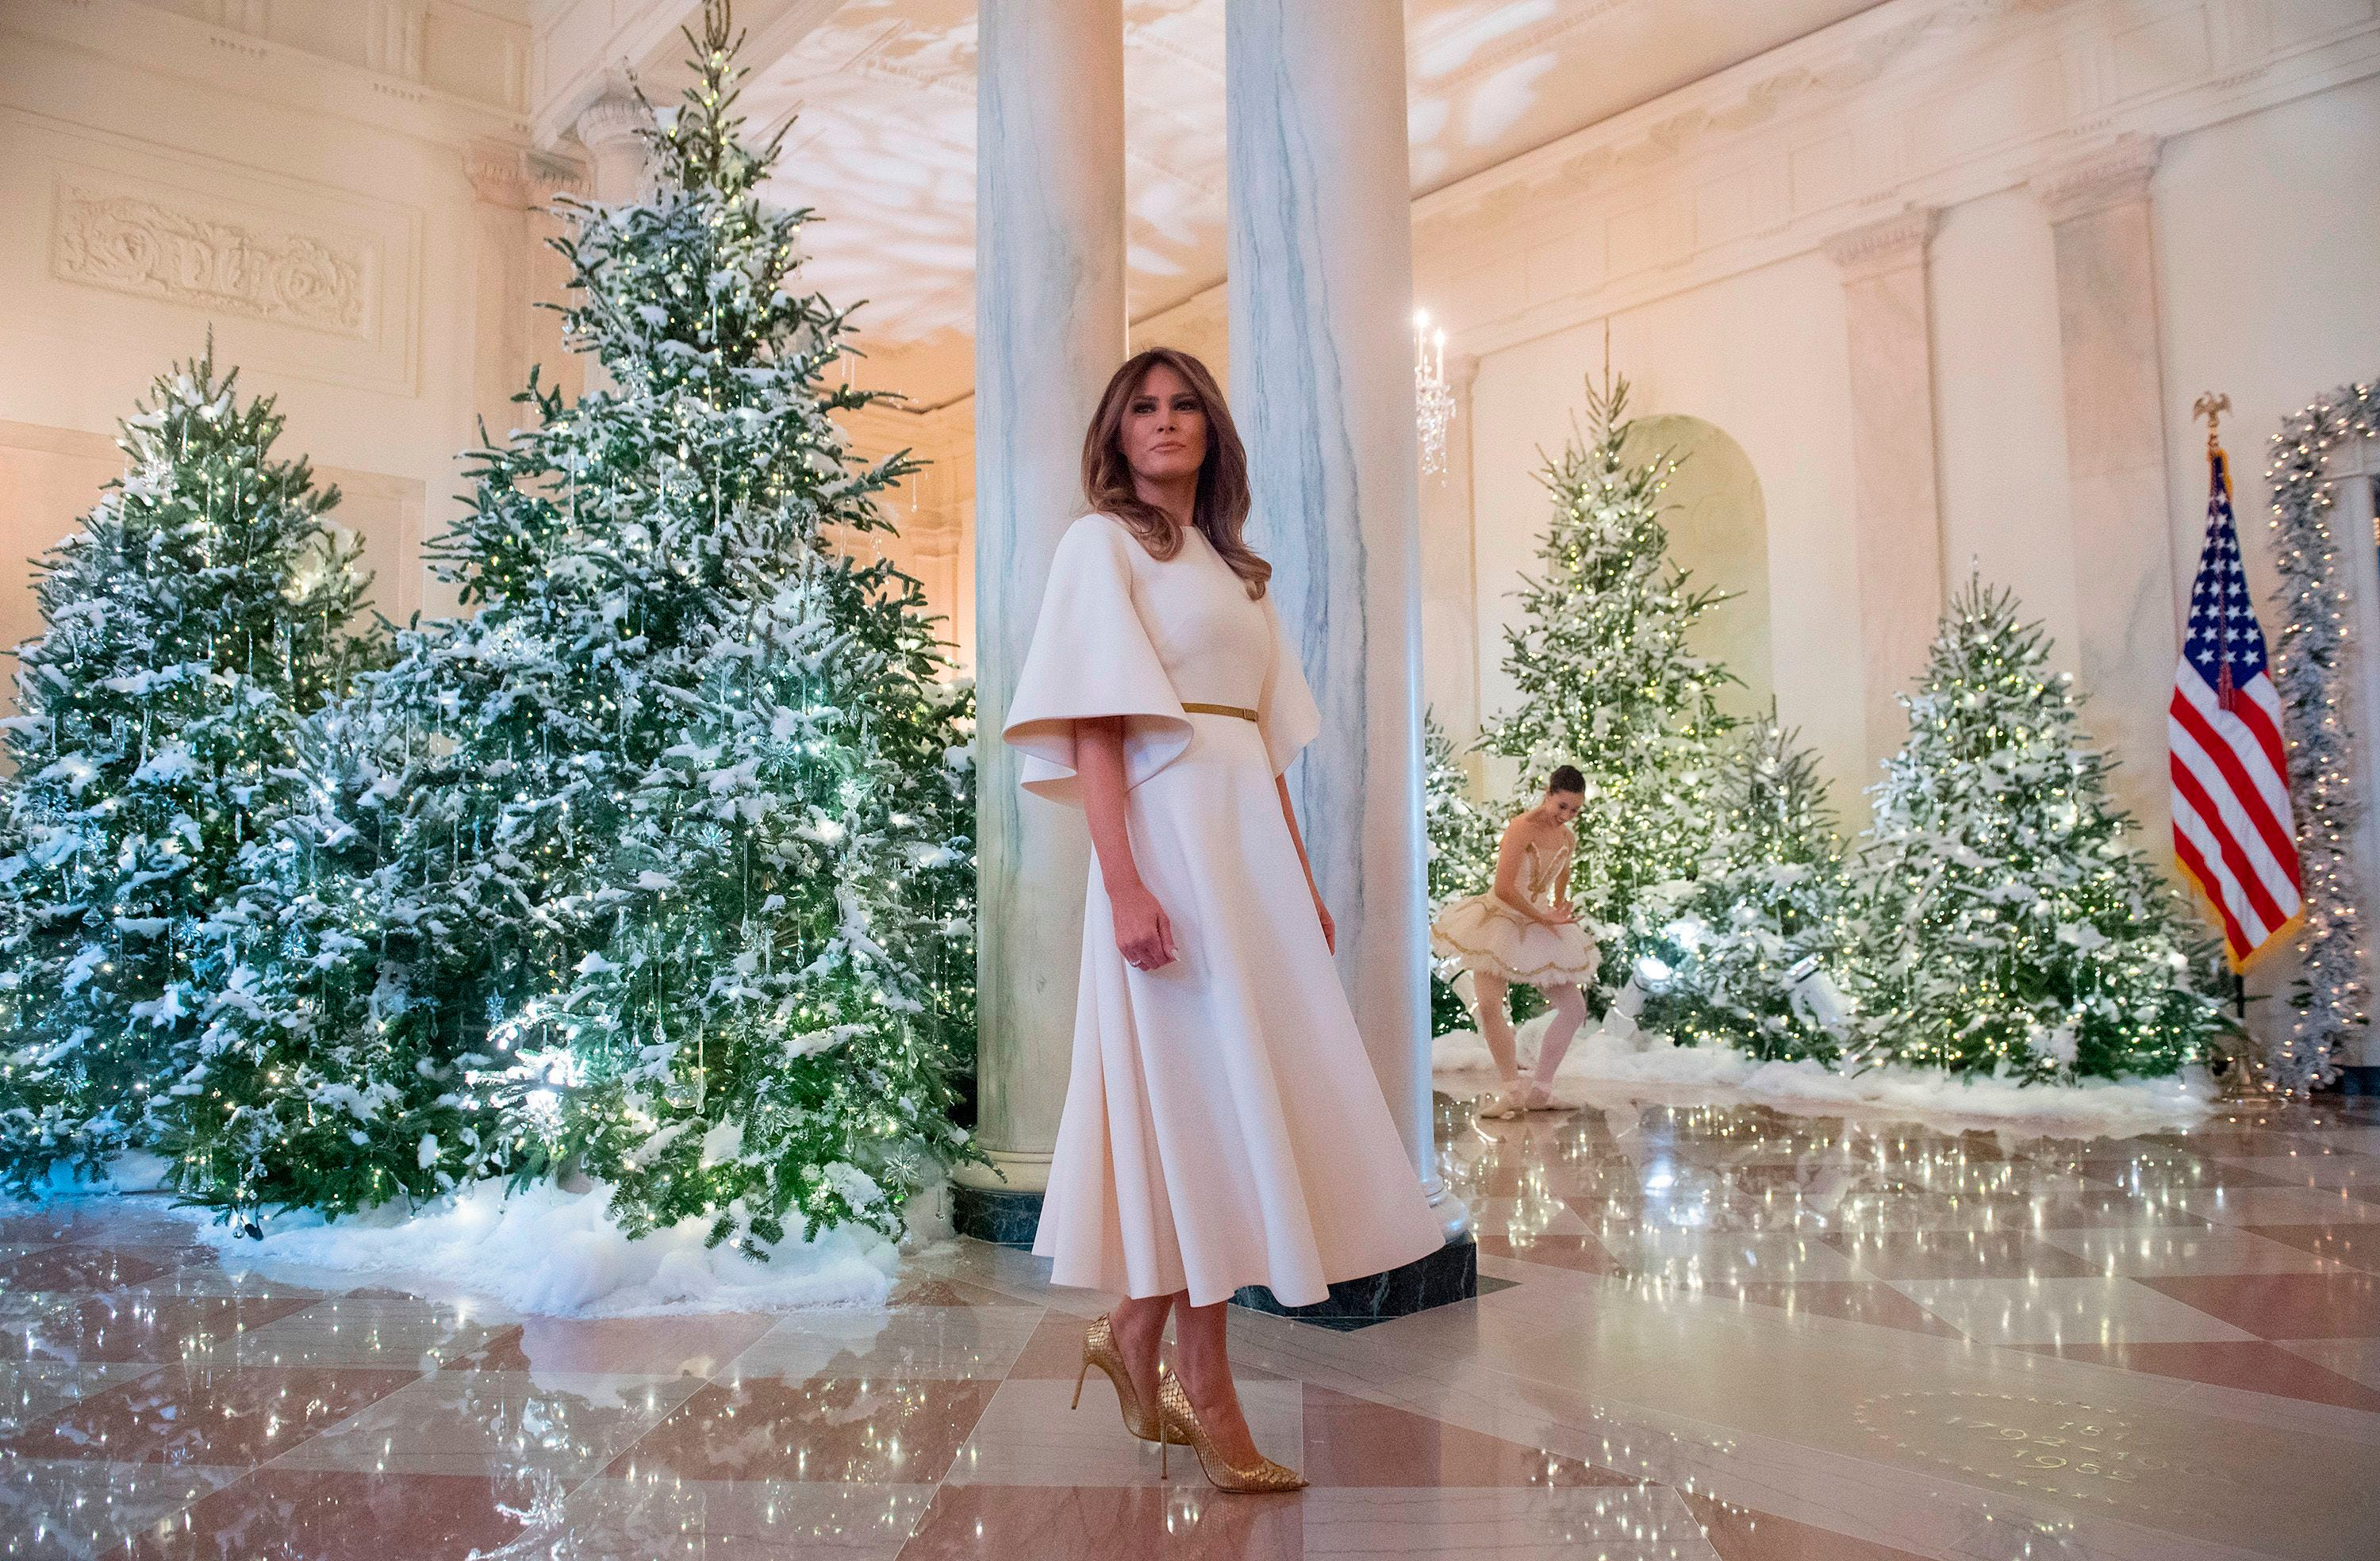 Trump 2020 Christmas Message Melania Trump's Christmas decorating curse leaks, Twitter reacts